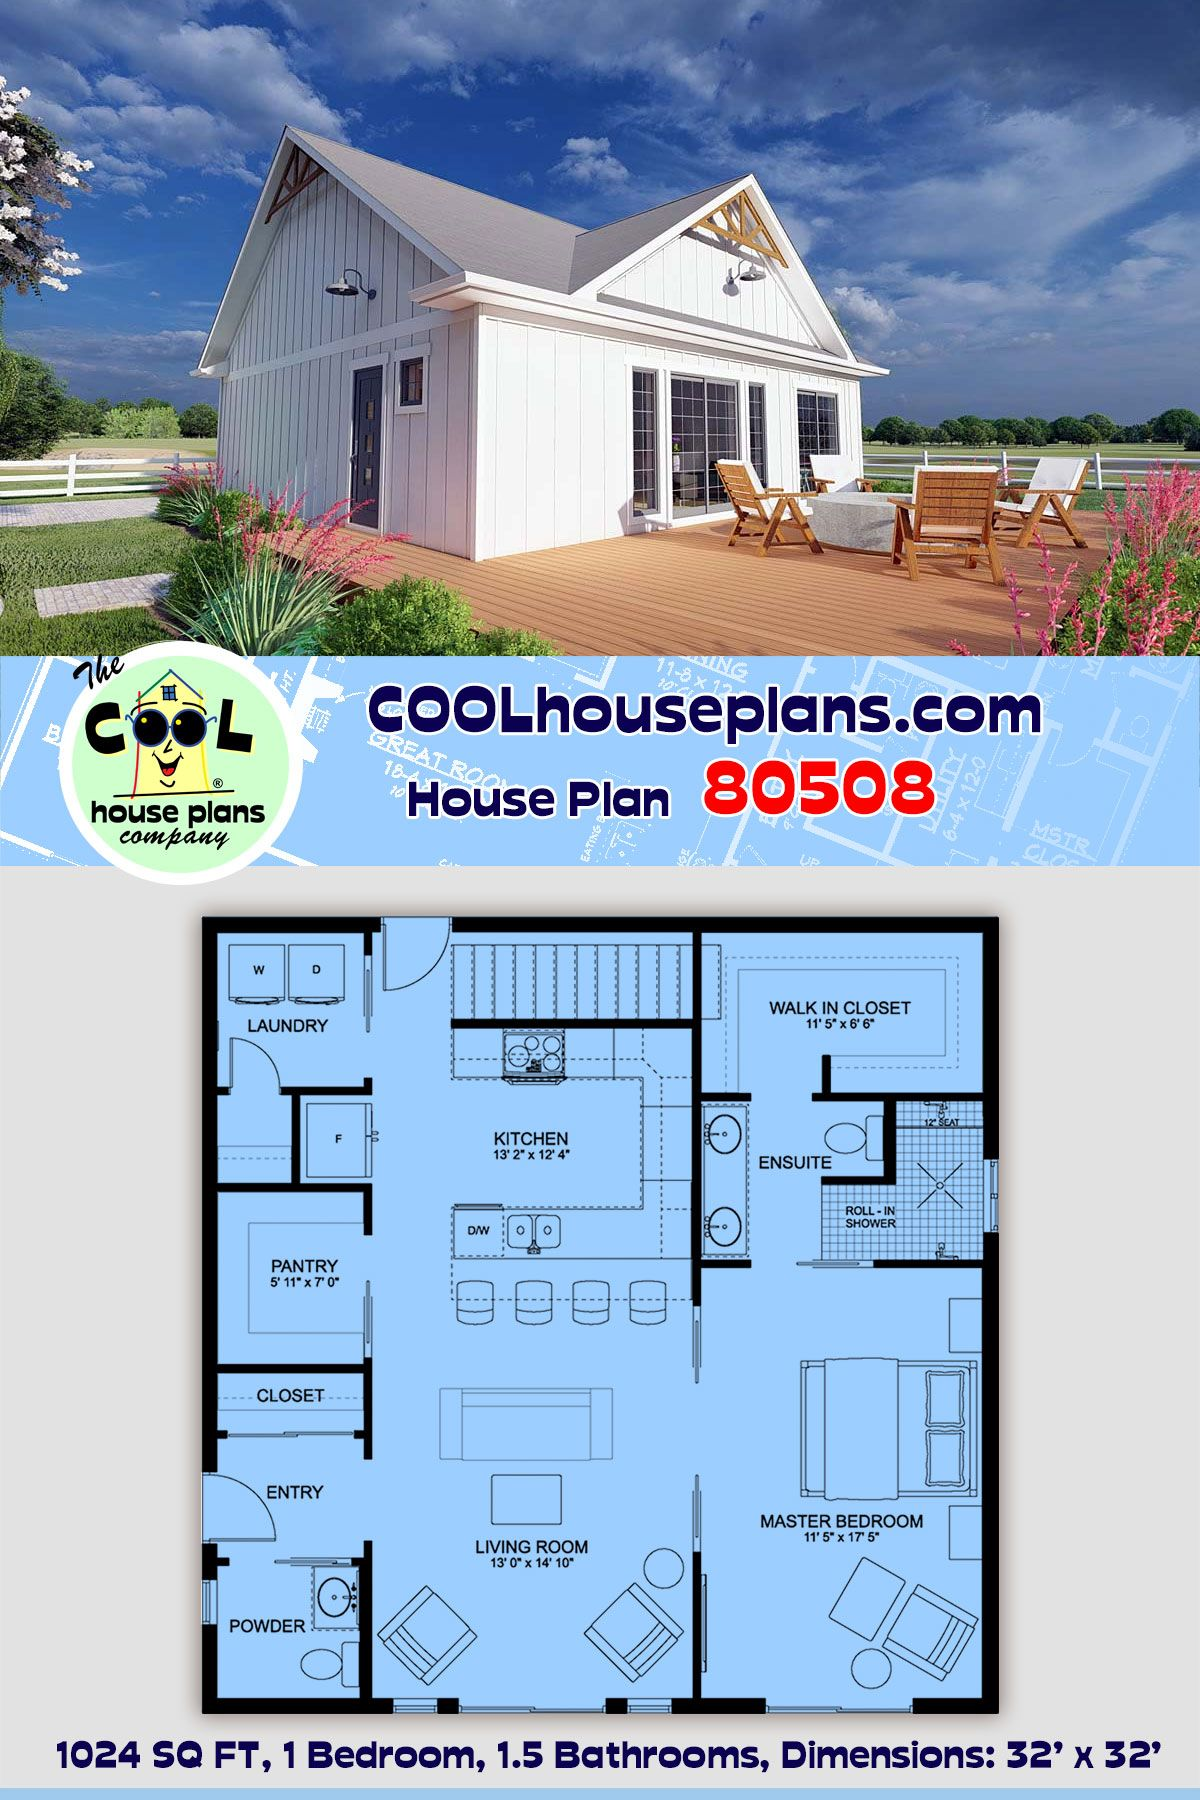 Ranch Style House Plan 80508 With 1 Bed 2 Bath Ranch Style House Plans Ranch Style Homes House Plans